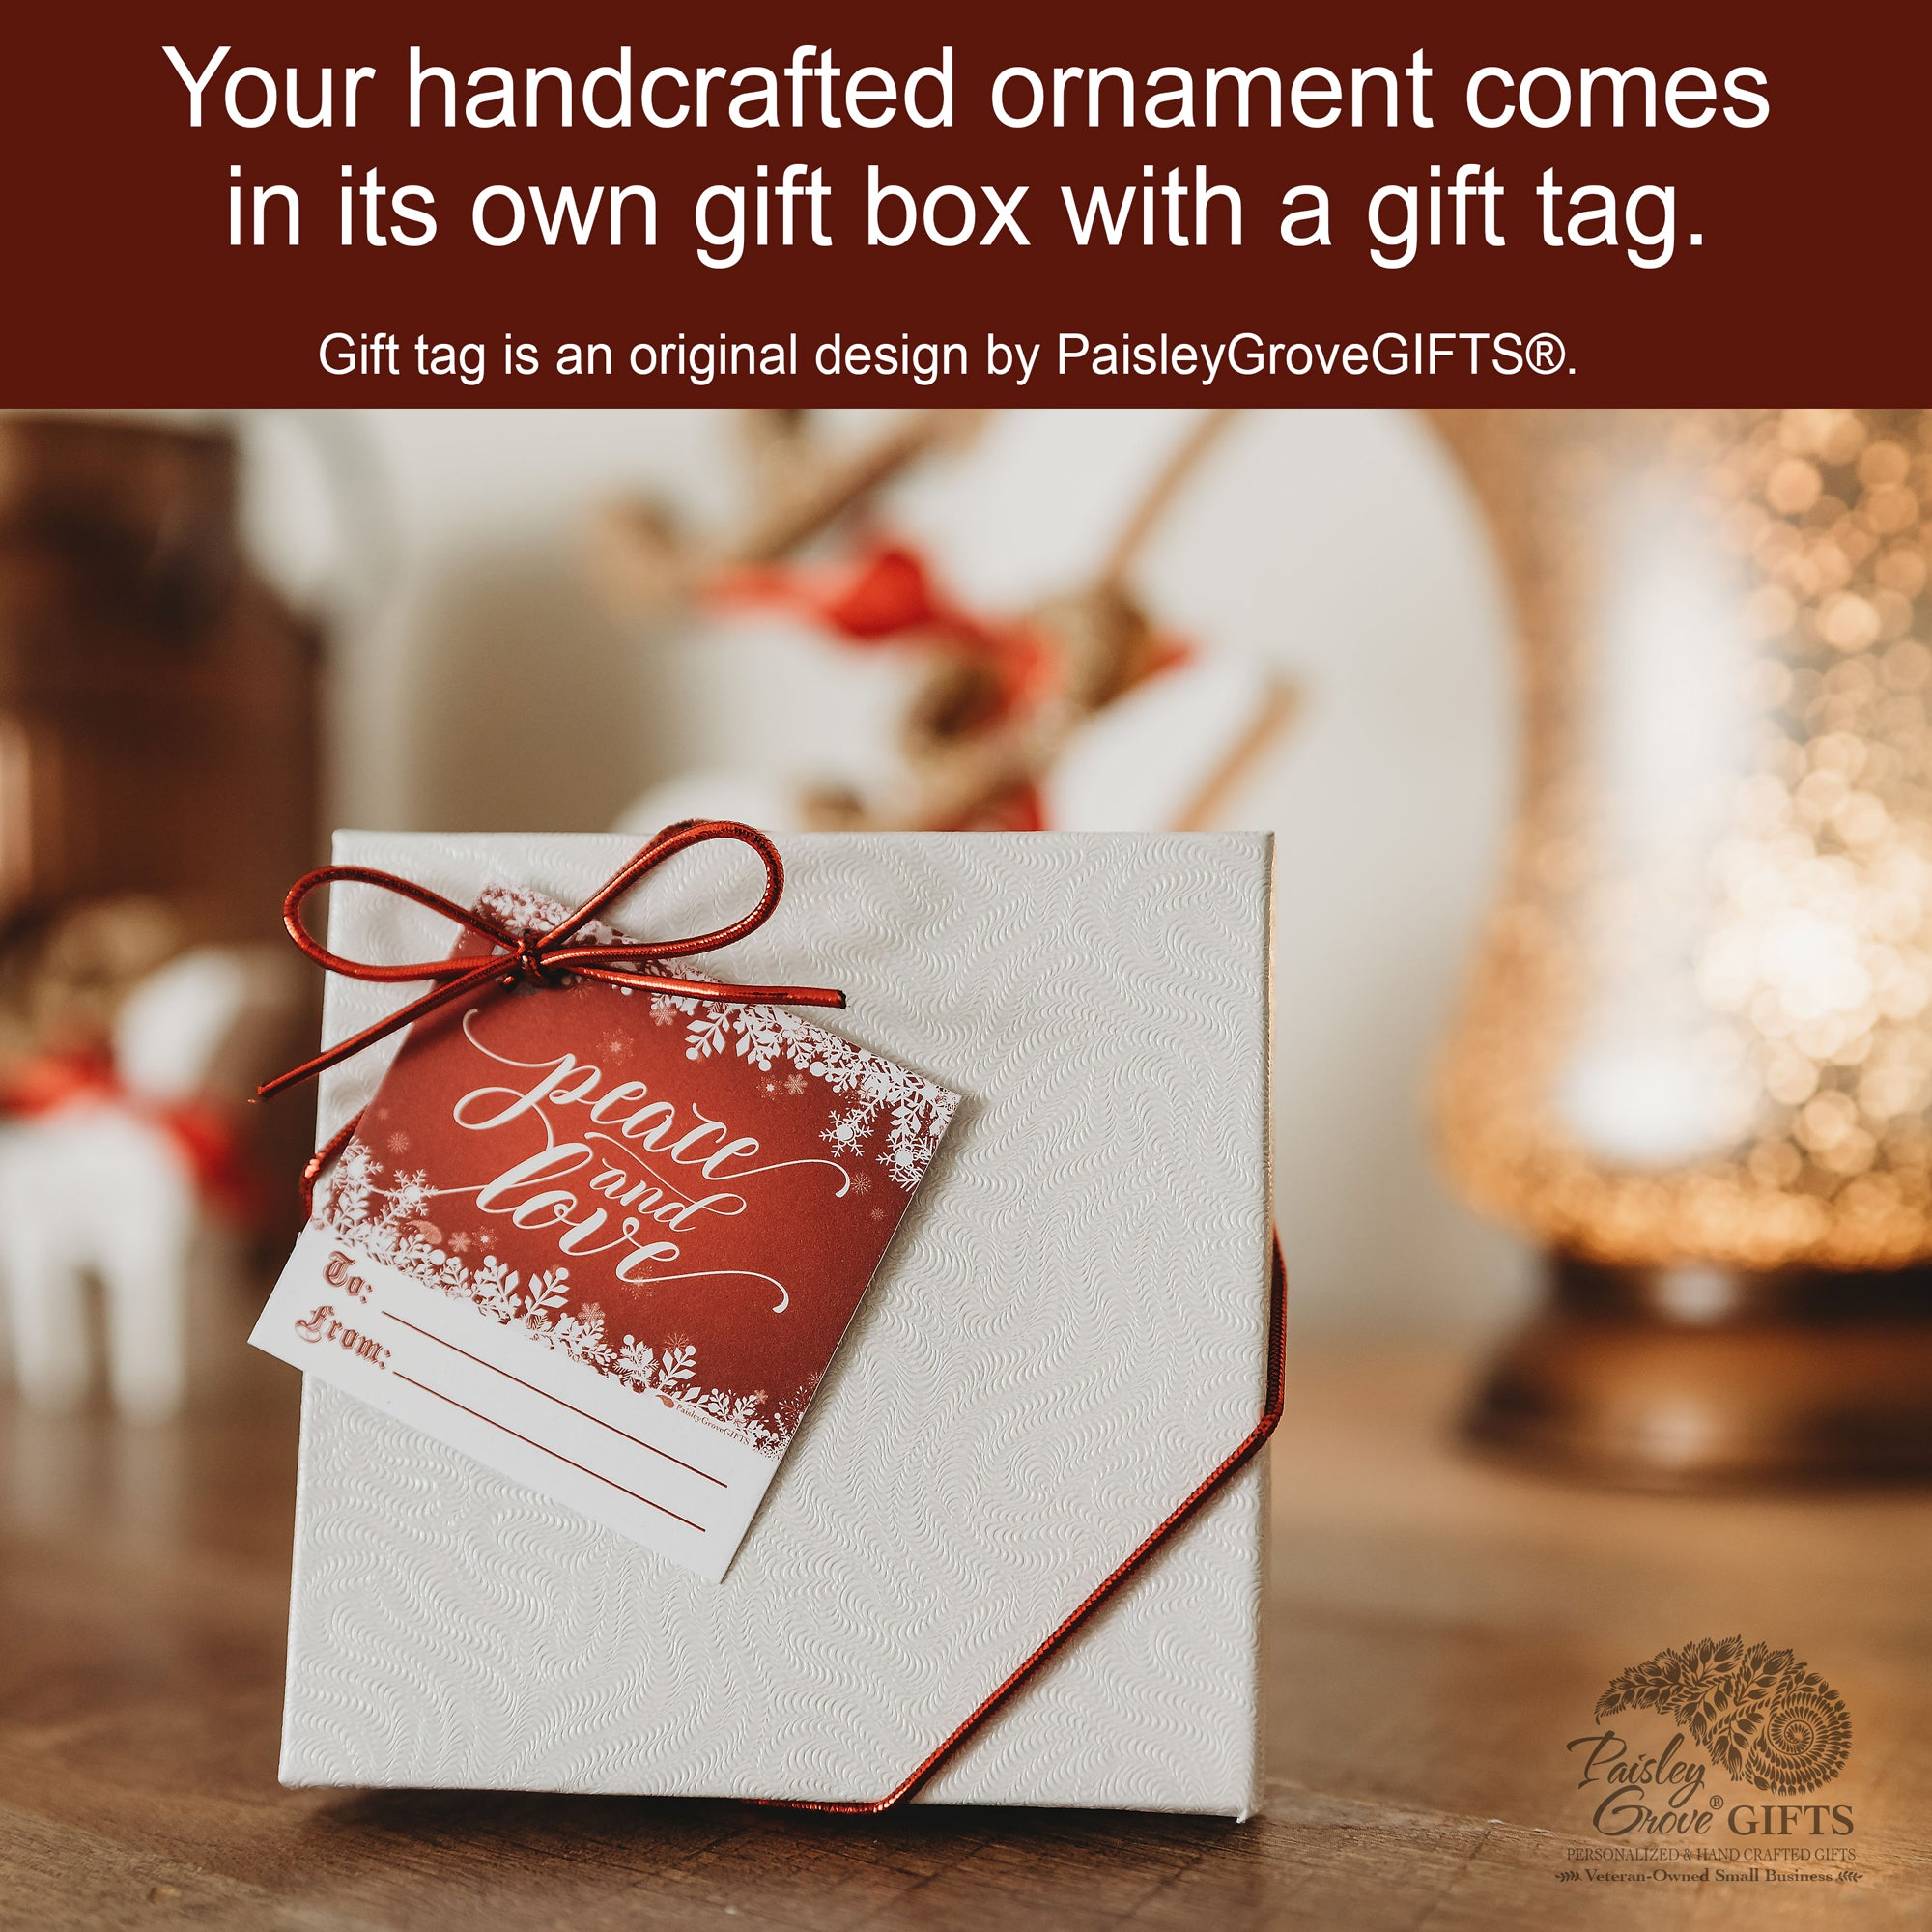 Copyright PaisleyGroveGIFTS S525k Unique Christmas Ornament 2020 includes keepsake gift box with gift tag